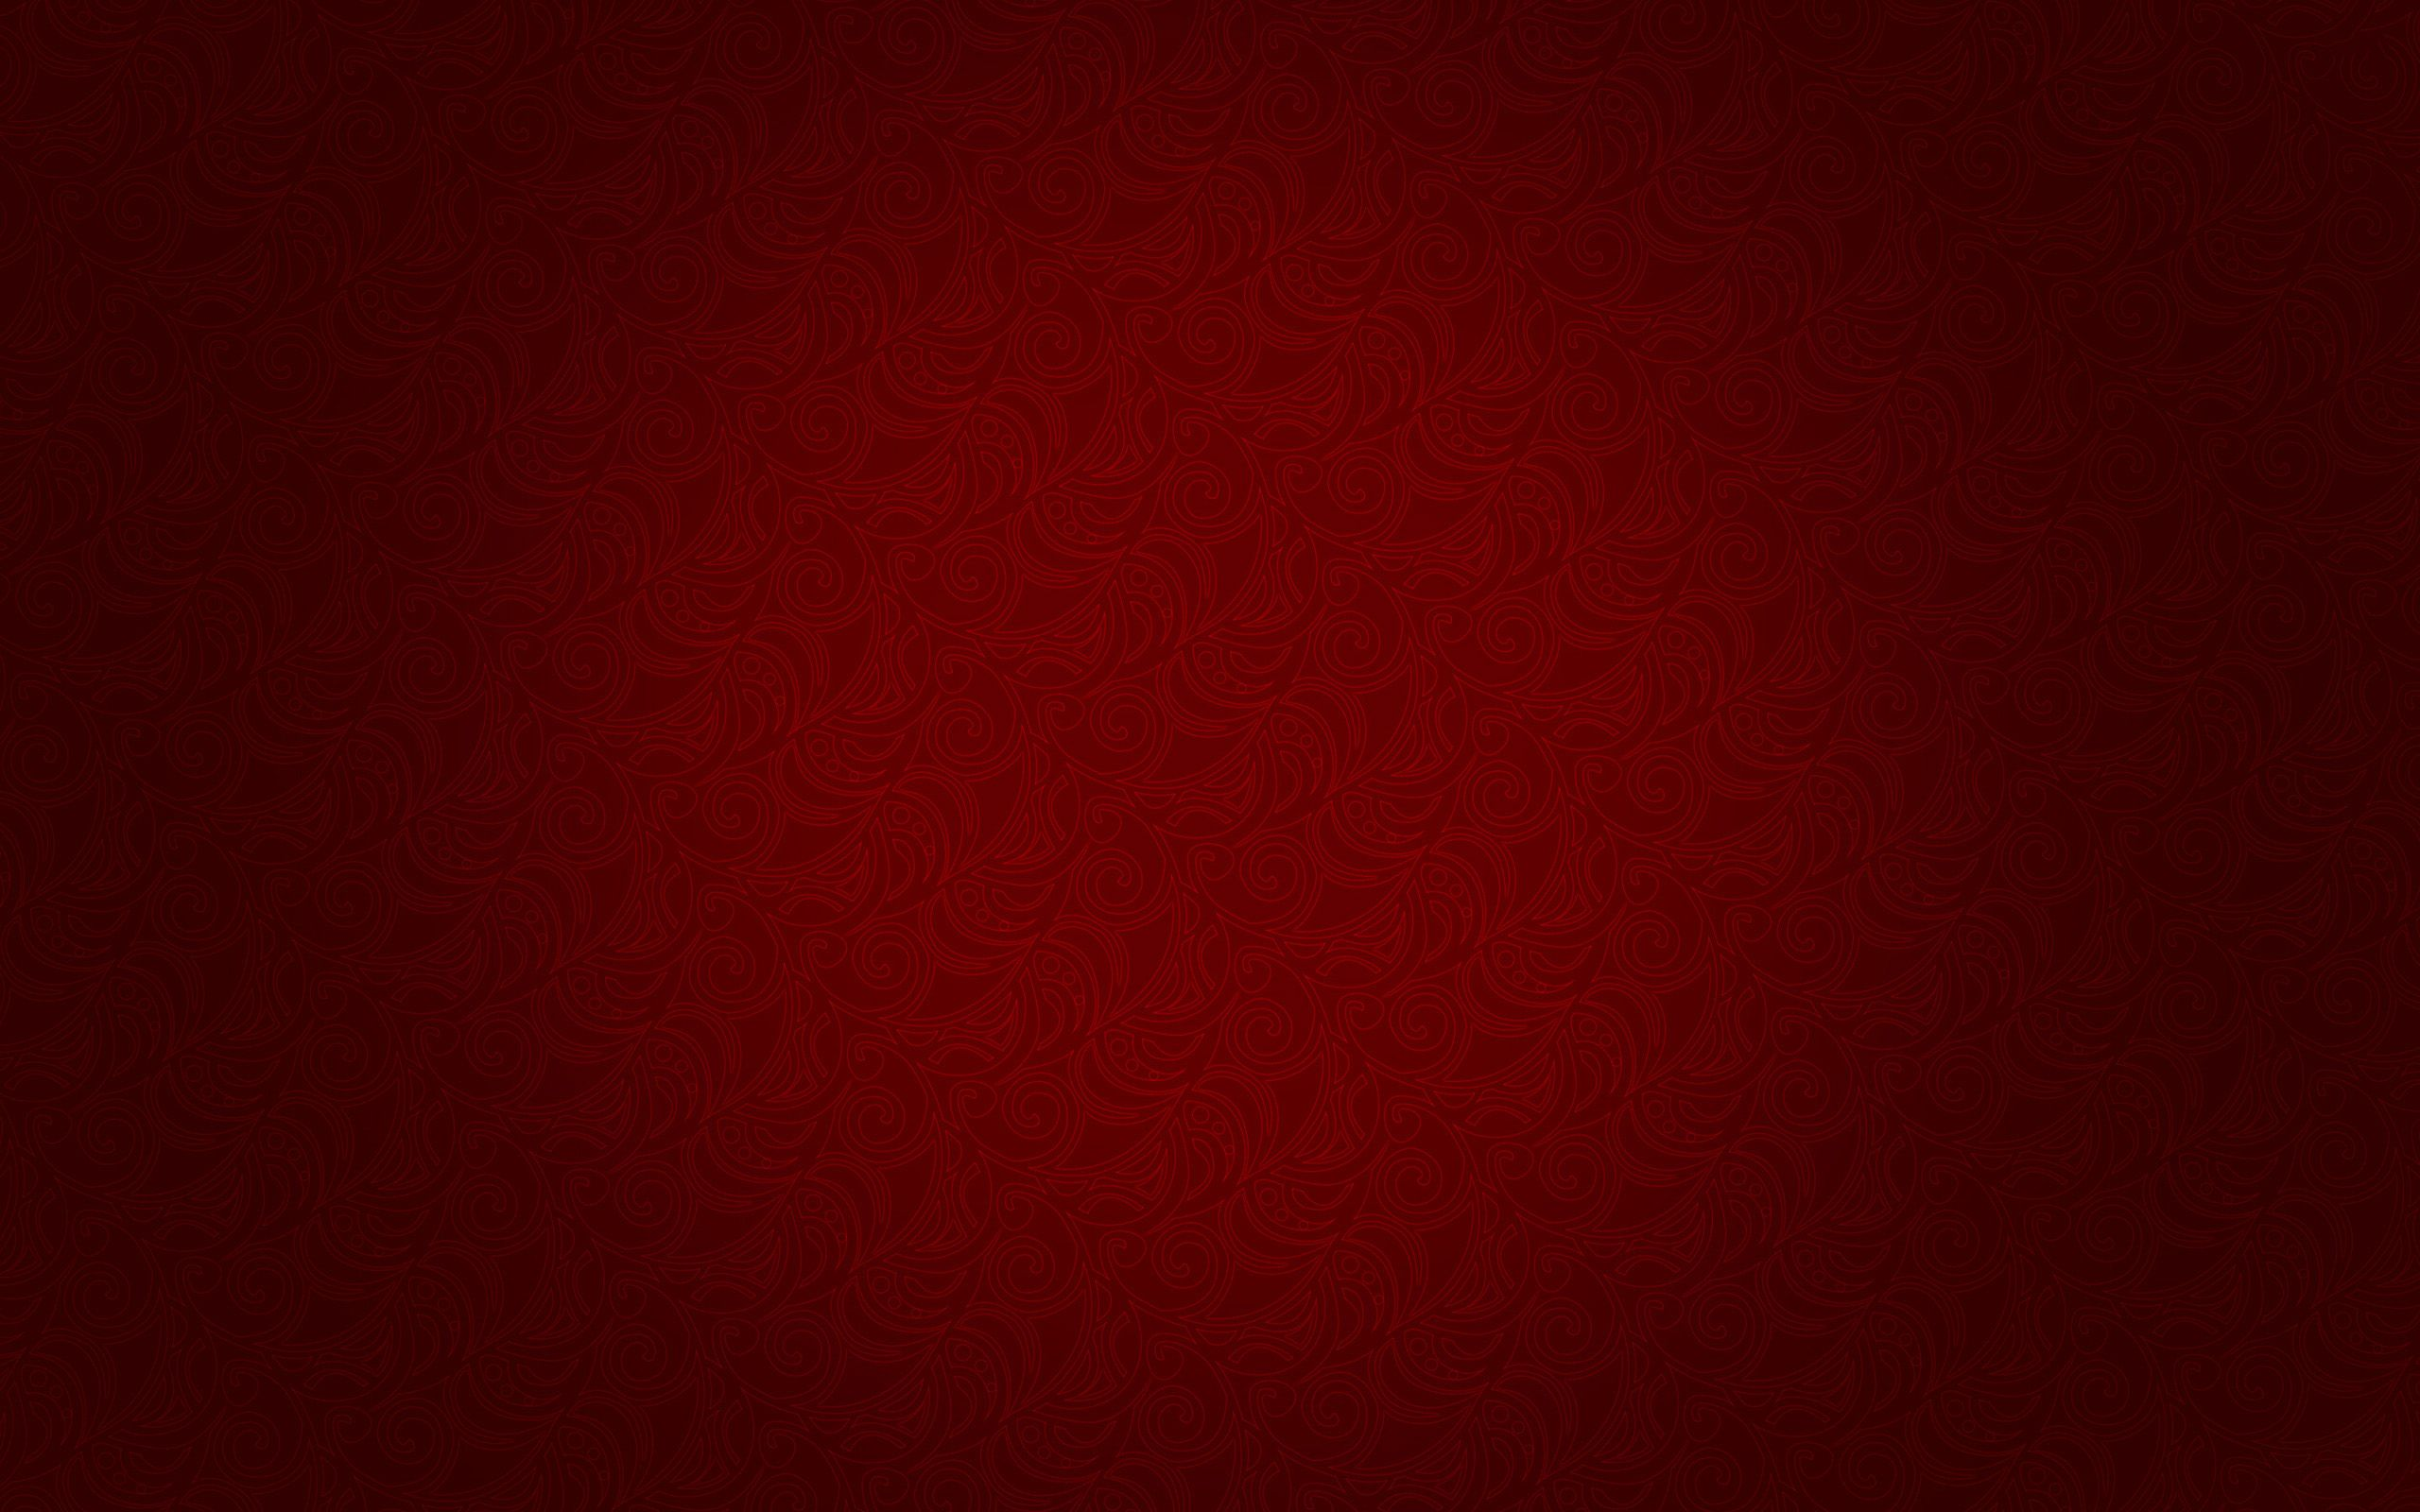 maroon background hd posted by ryan peltier maroon background hd posted by ryan peltier